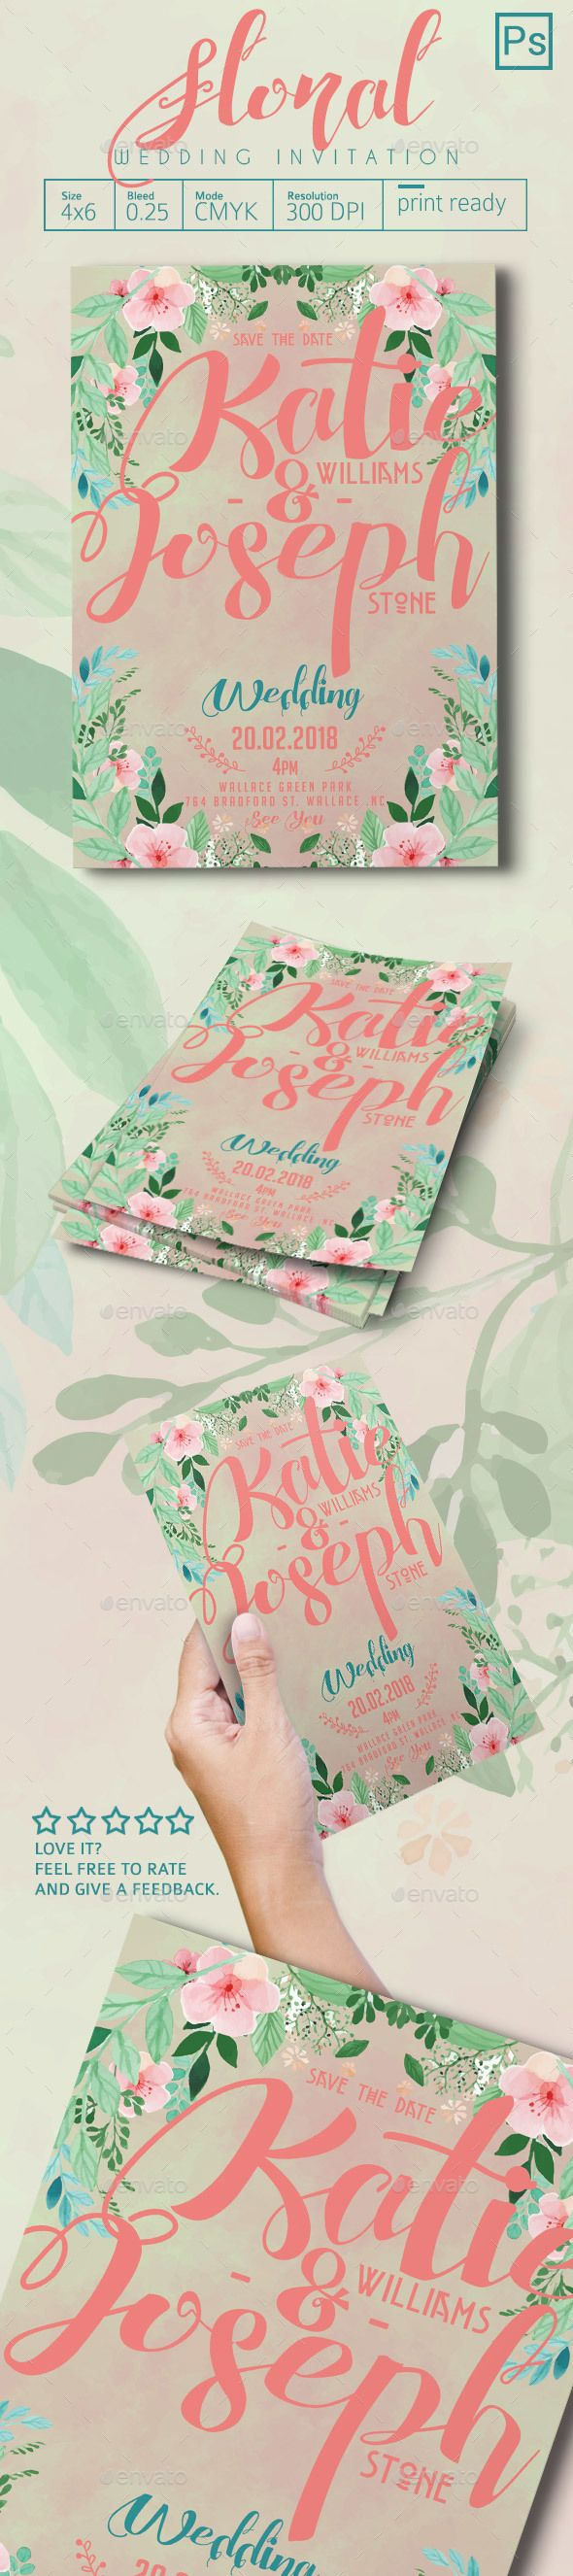 free wedding invitation psd%0A Floral Wedding Invitation